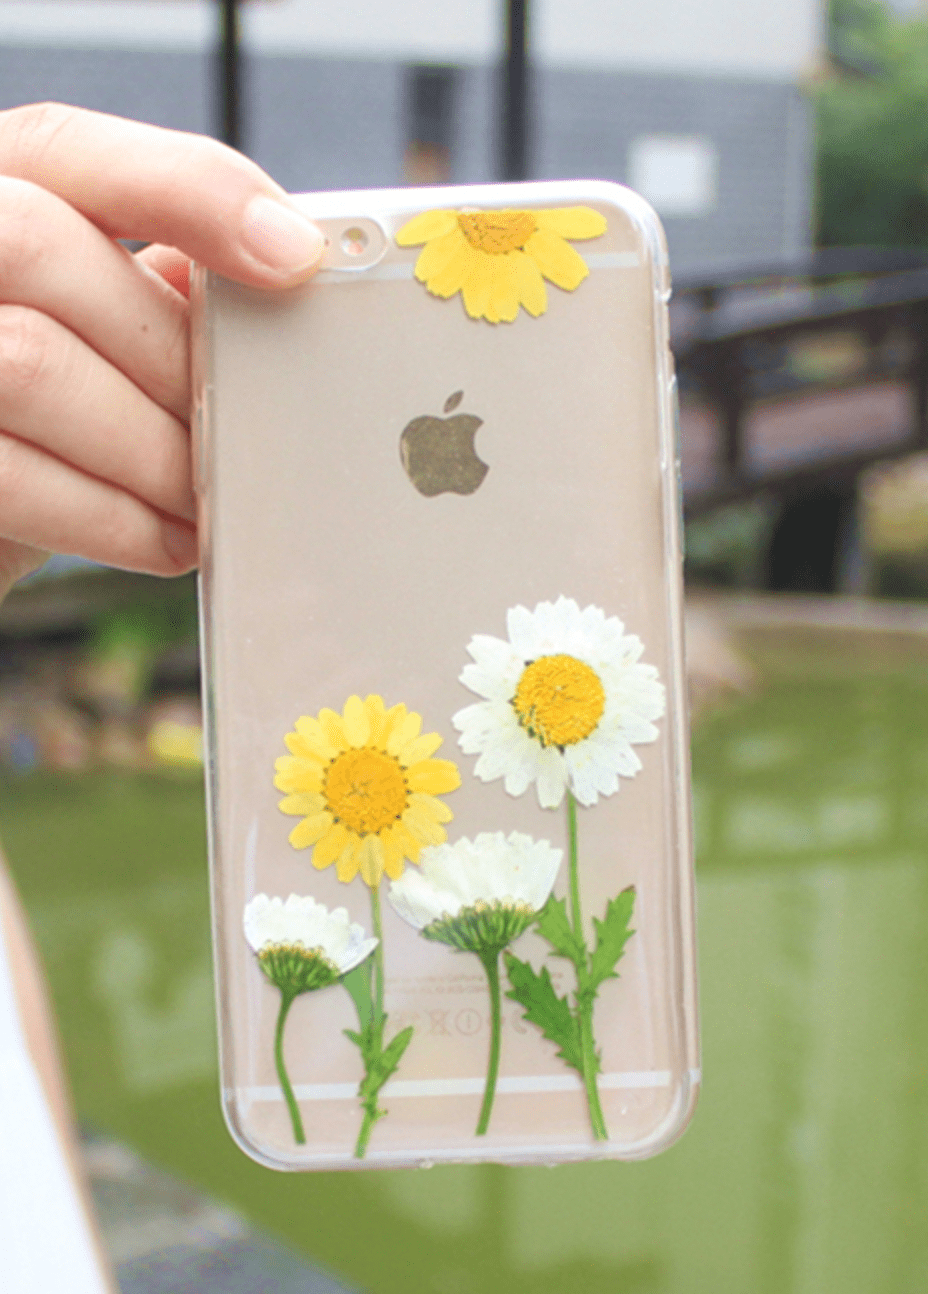 Handmade Beautiful [Real Dried Flower and Leaf Embedded] Pressed Floral Flexible Soft Rubber iPhone case, CA002 A8 - We Love Apple